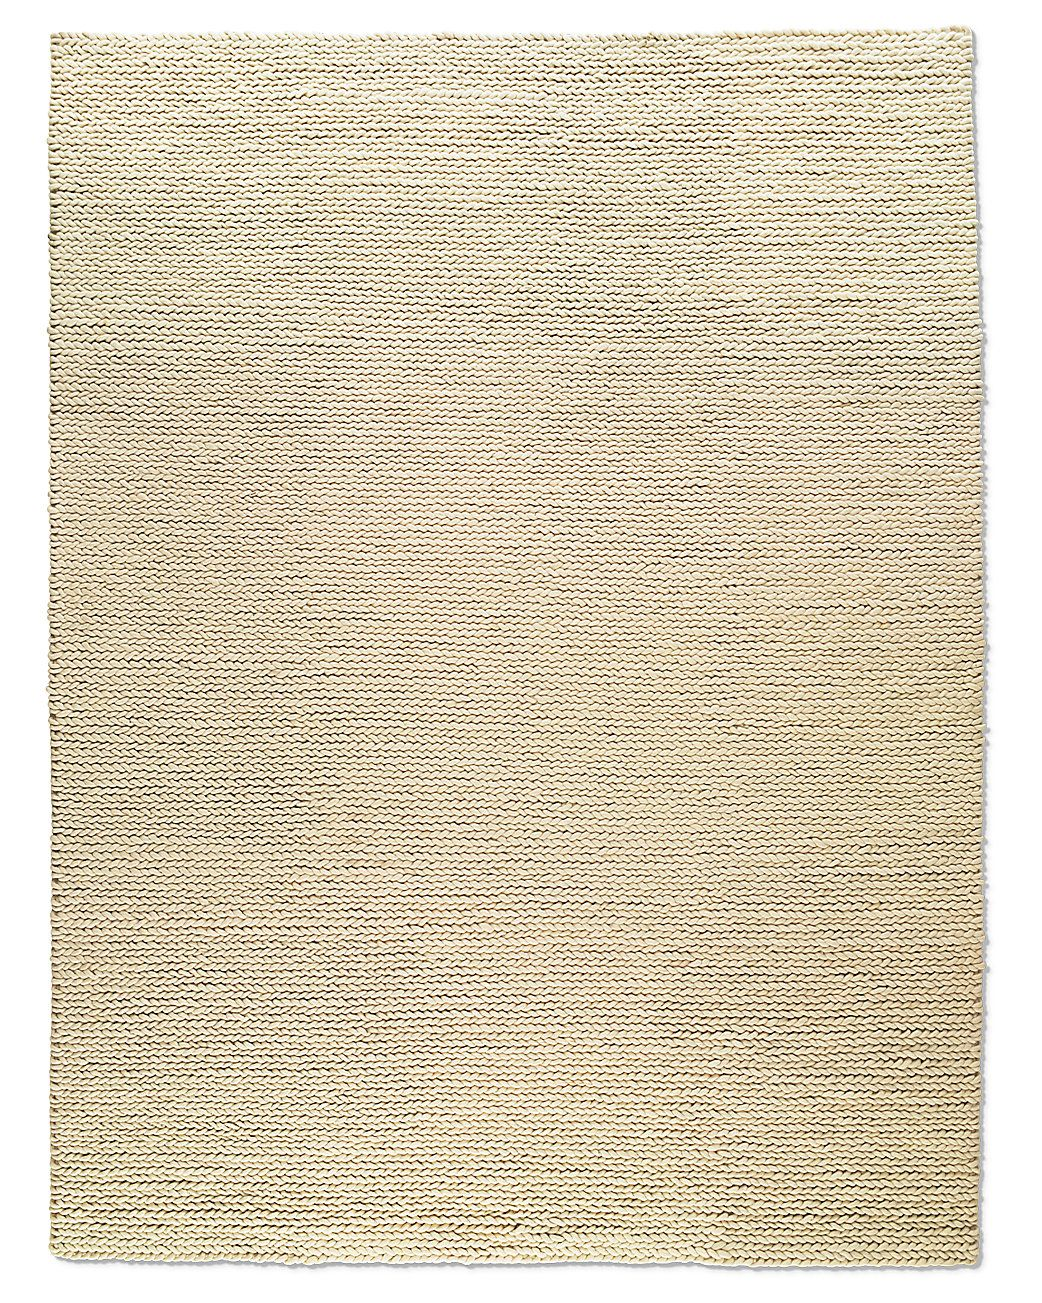 Chunky Braided Wool Rug   Textural Appeal Of A Favorite Sweater. The  Substantial Wool Yarns